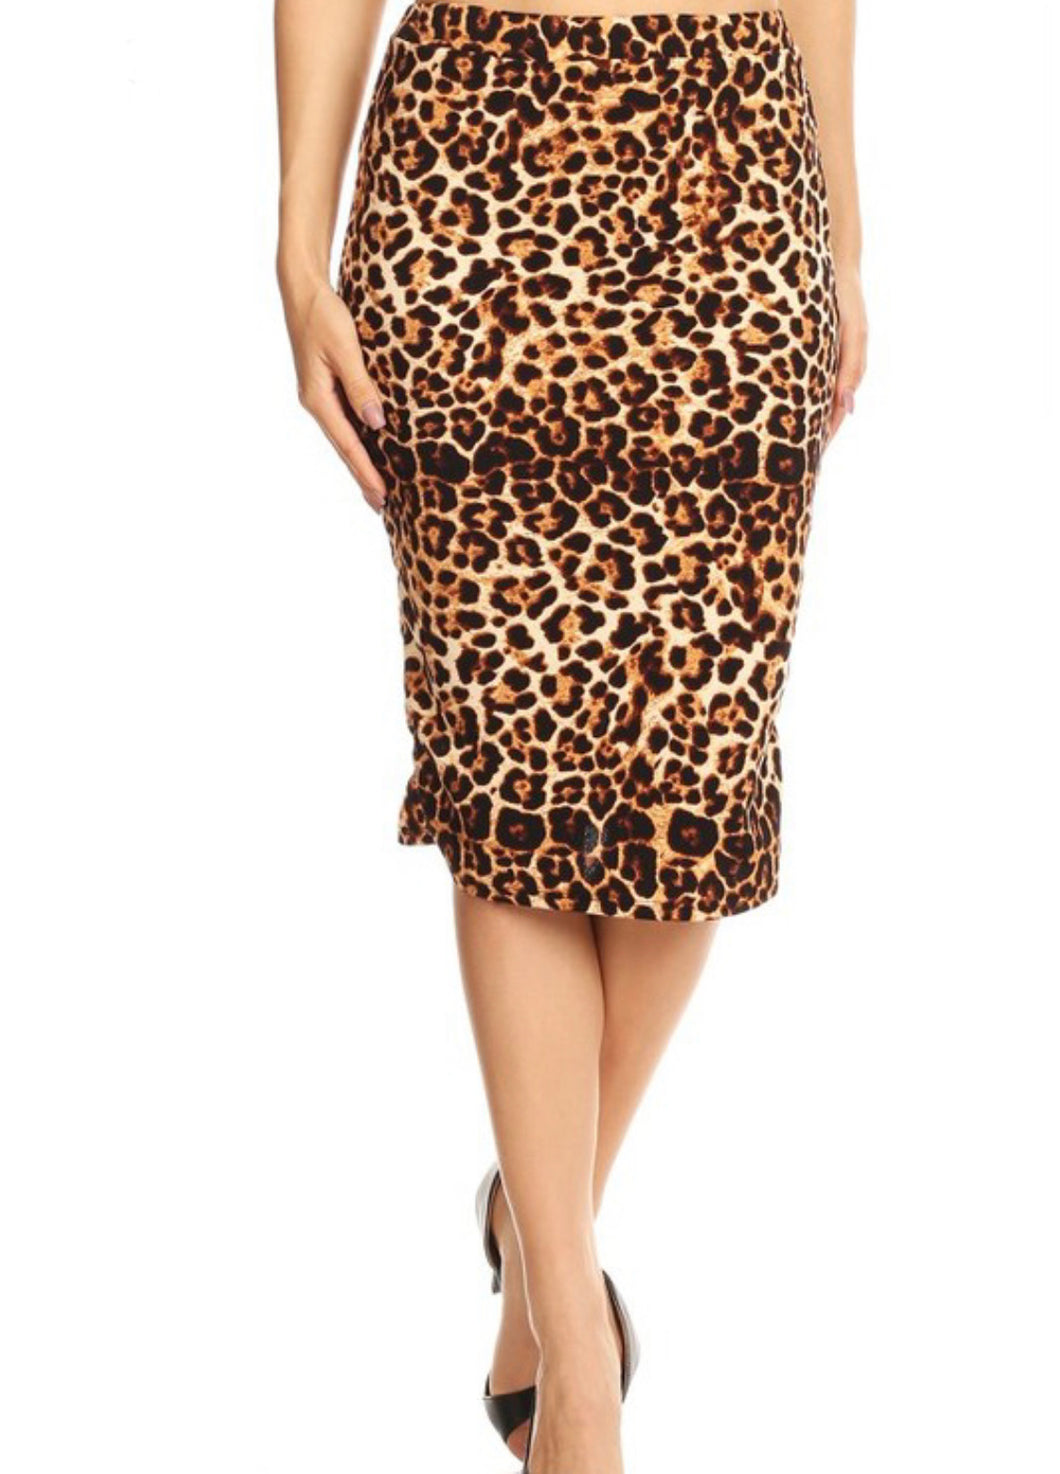 Bella Cheetah Print Skirt